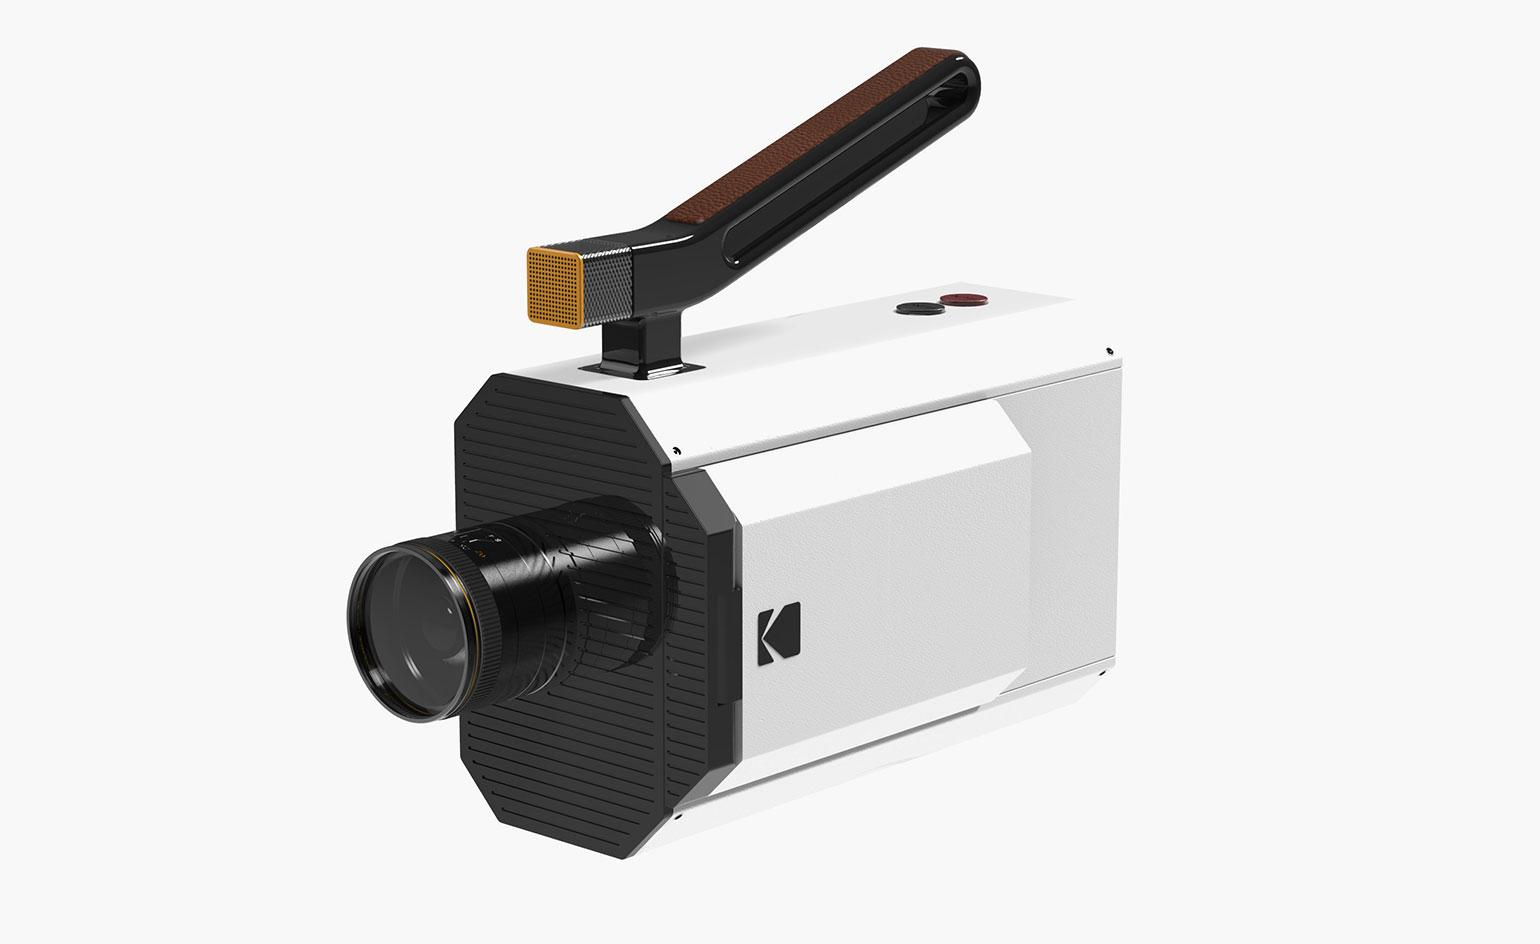 Going digital: Yves Béhar redesigns iconic Kodak Super 8 film camera